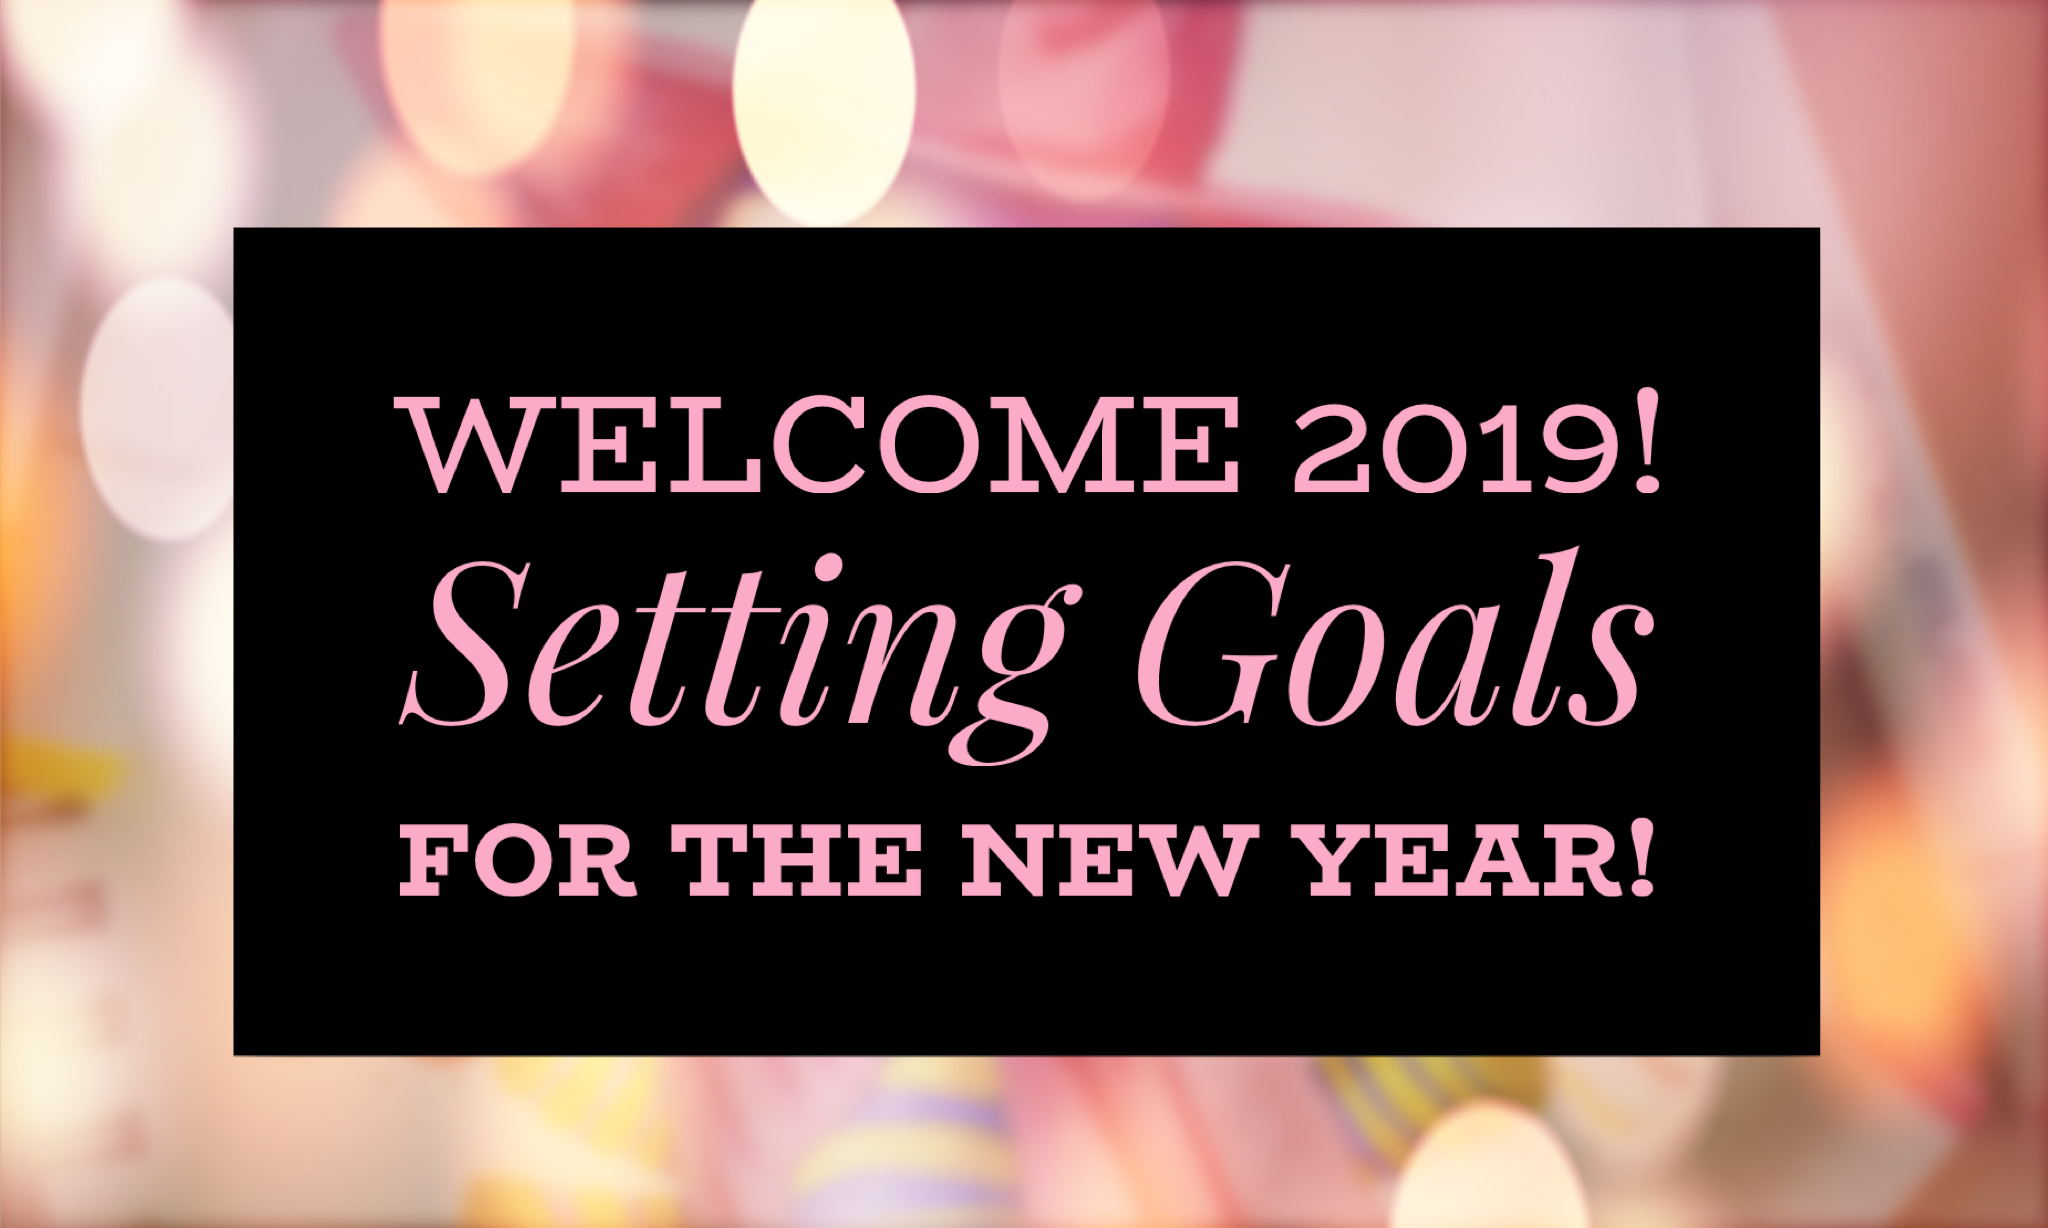 Welcome 2019! Setting Goals for the New Year!